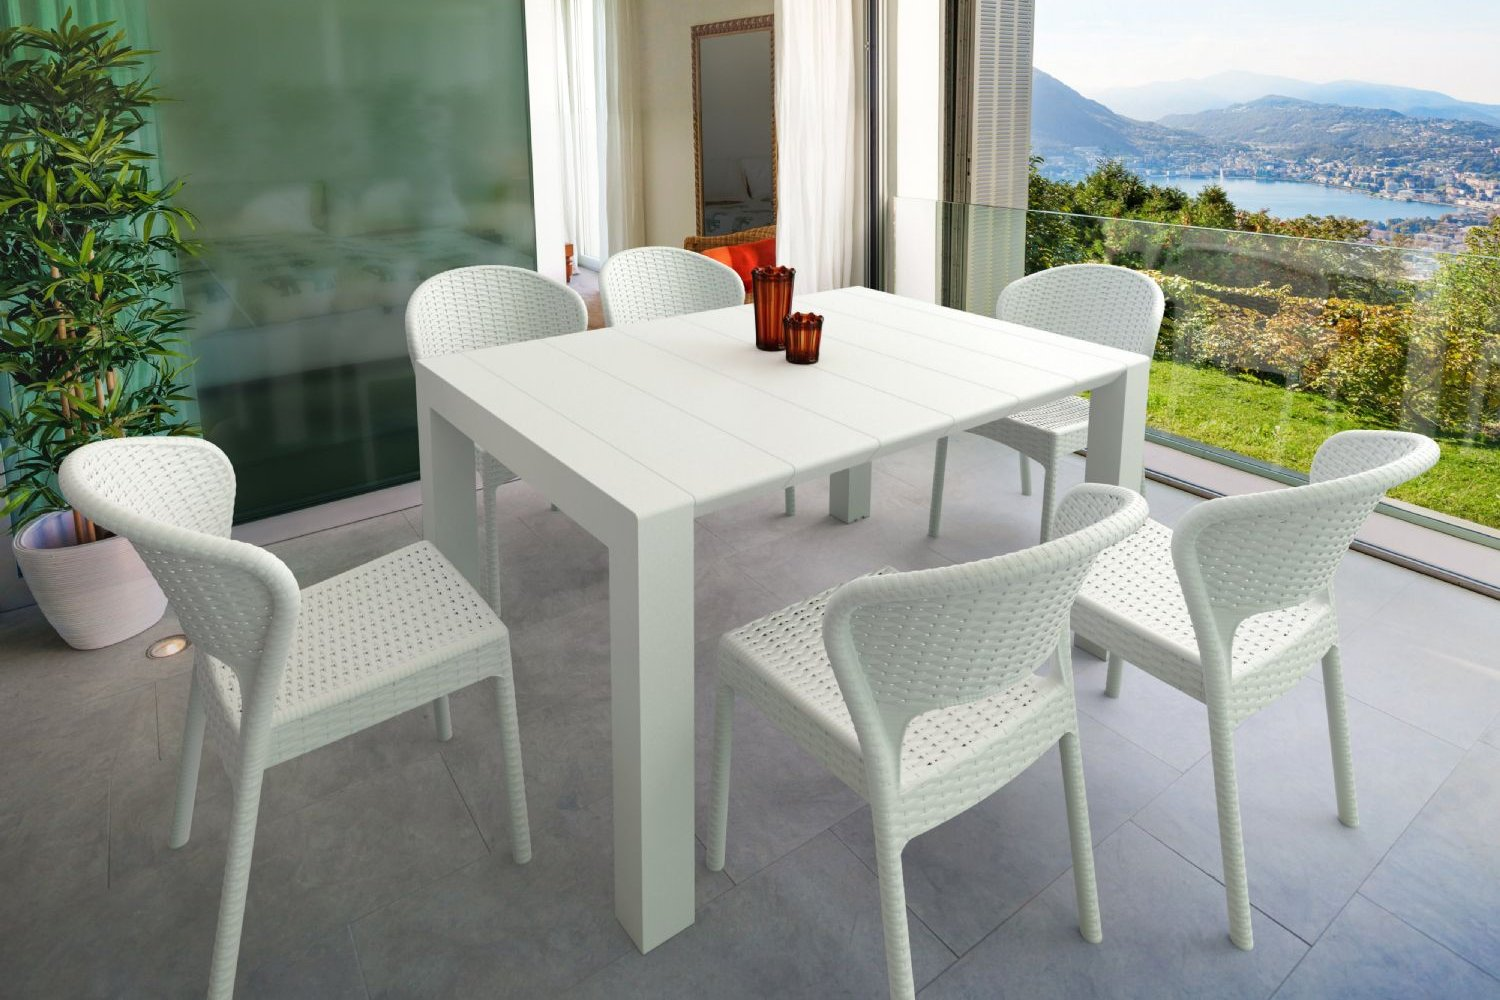 Daytona Extendable Dining Set 7 Piece White ISP8183S-WH - 3